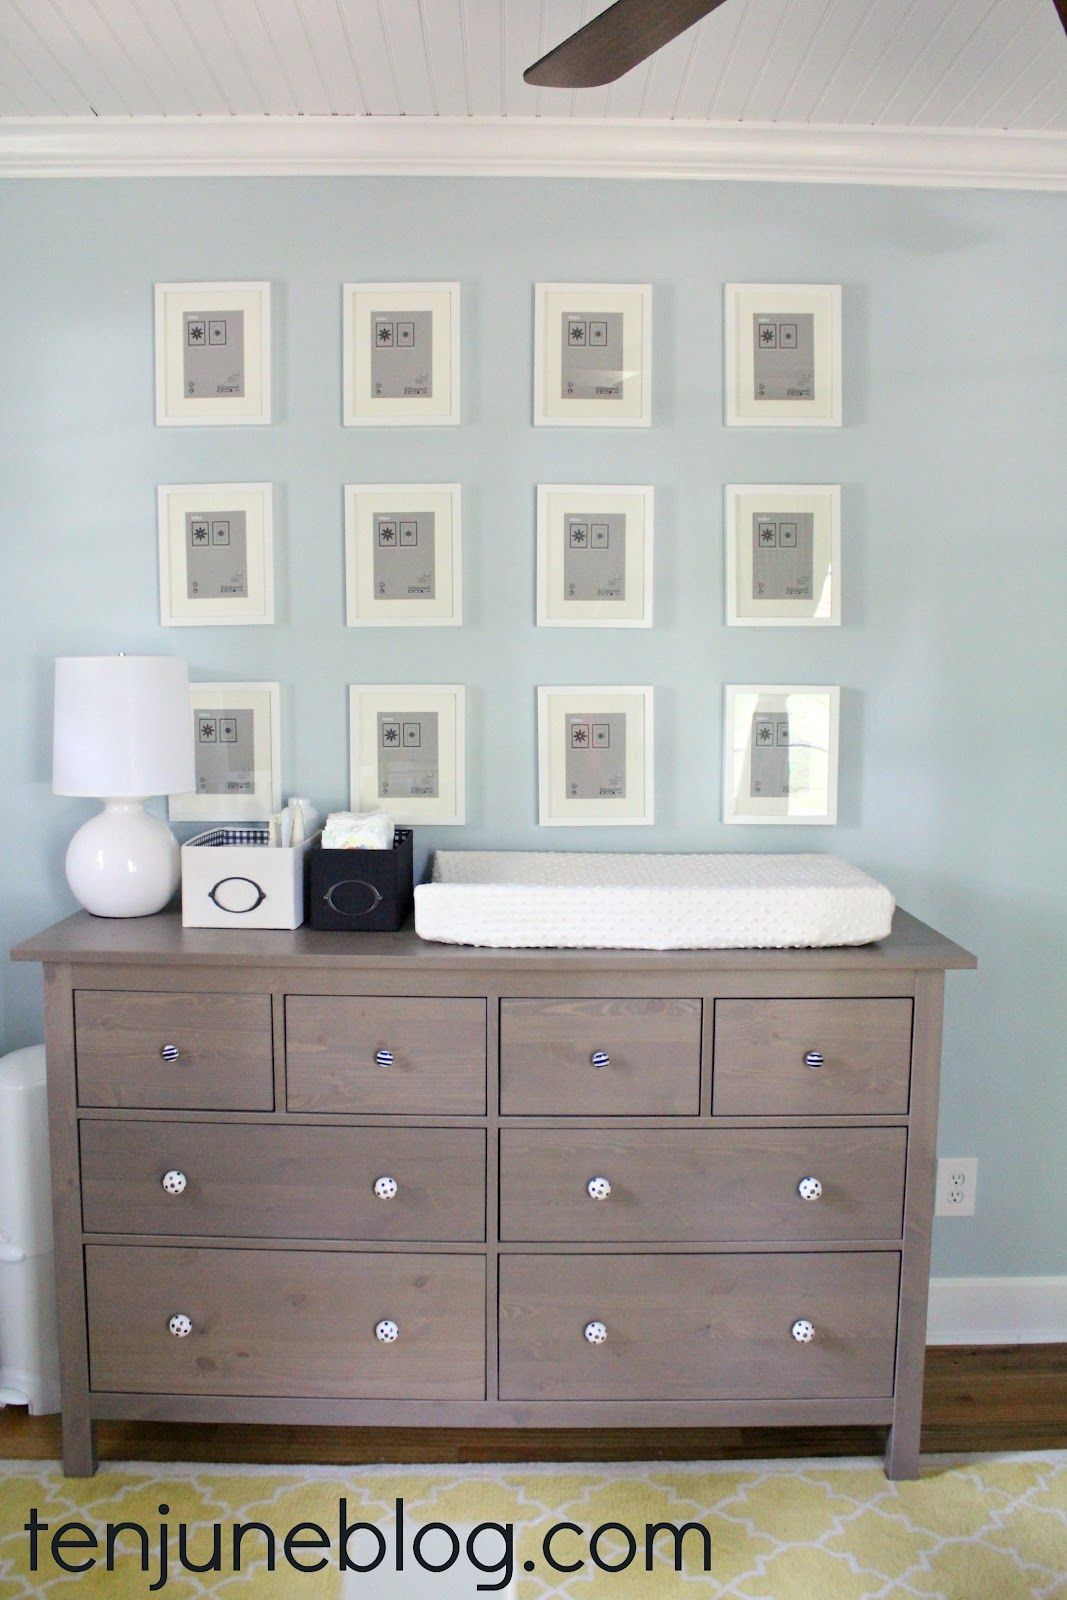 Superbe Ten June: Nursery Update: Ikea Dresser Turned Changing Table Station U0026 Land  Of Nod Gumball Lamps